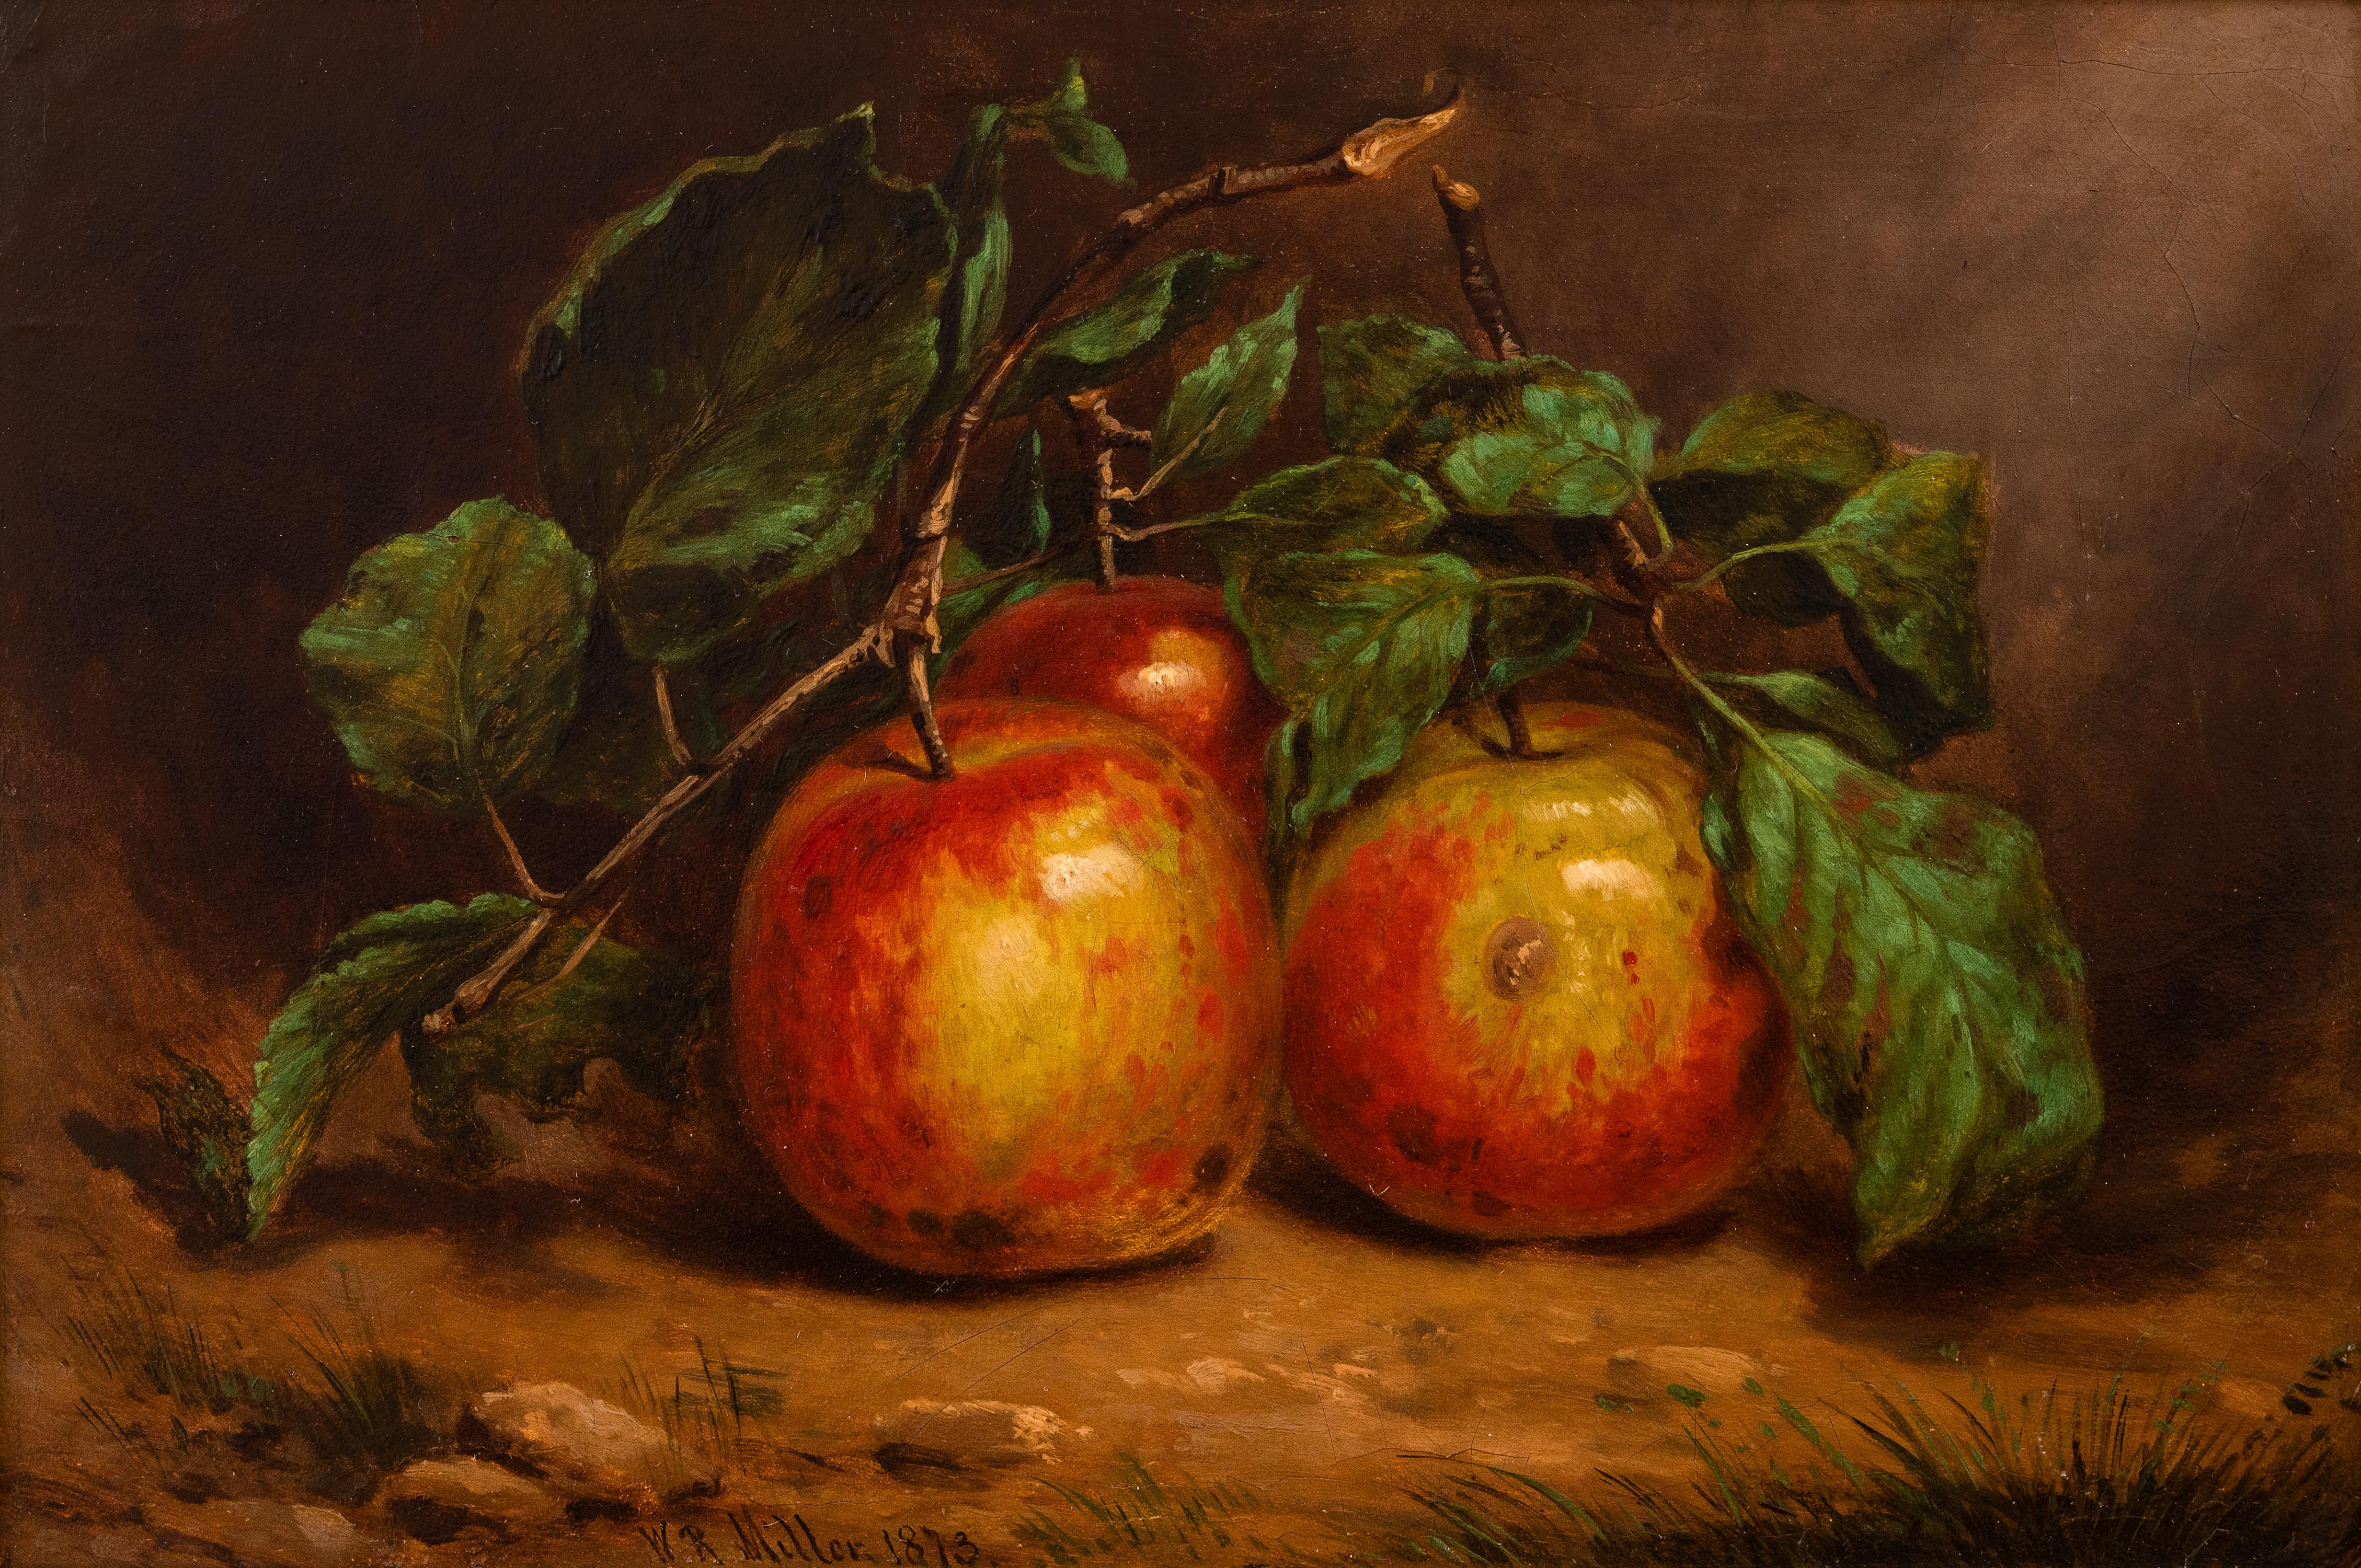 Study of Apples on a Bough